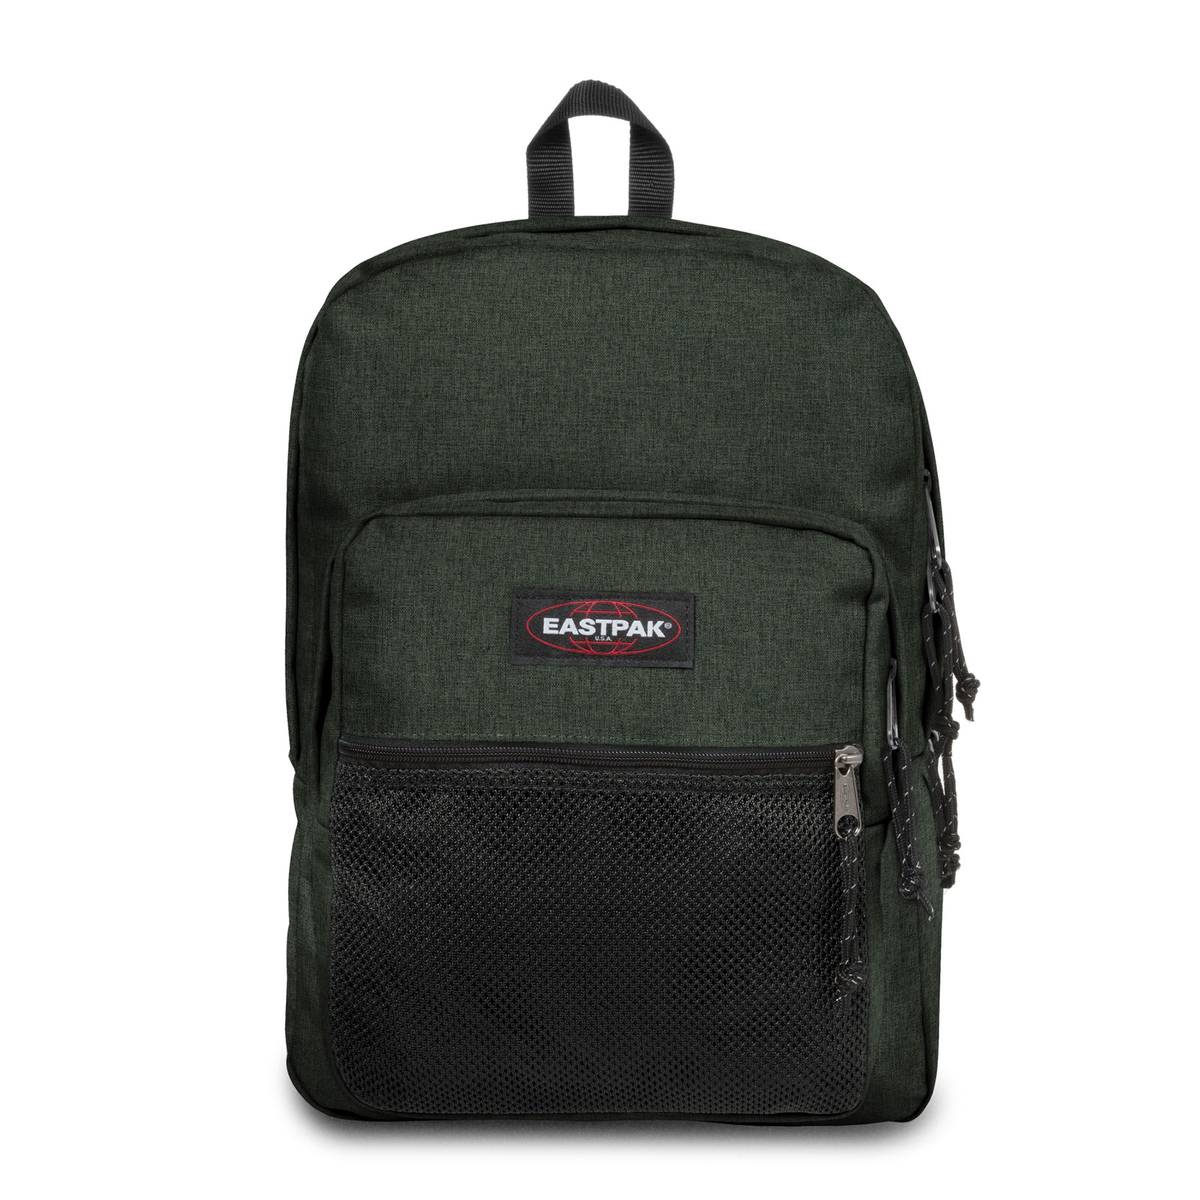 Eastpak ZAINO PINNACLE CRAFTY MOSS